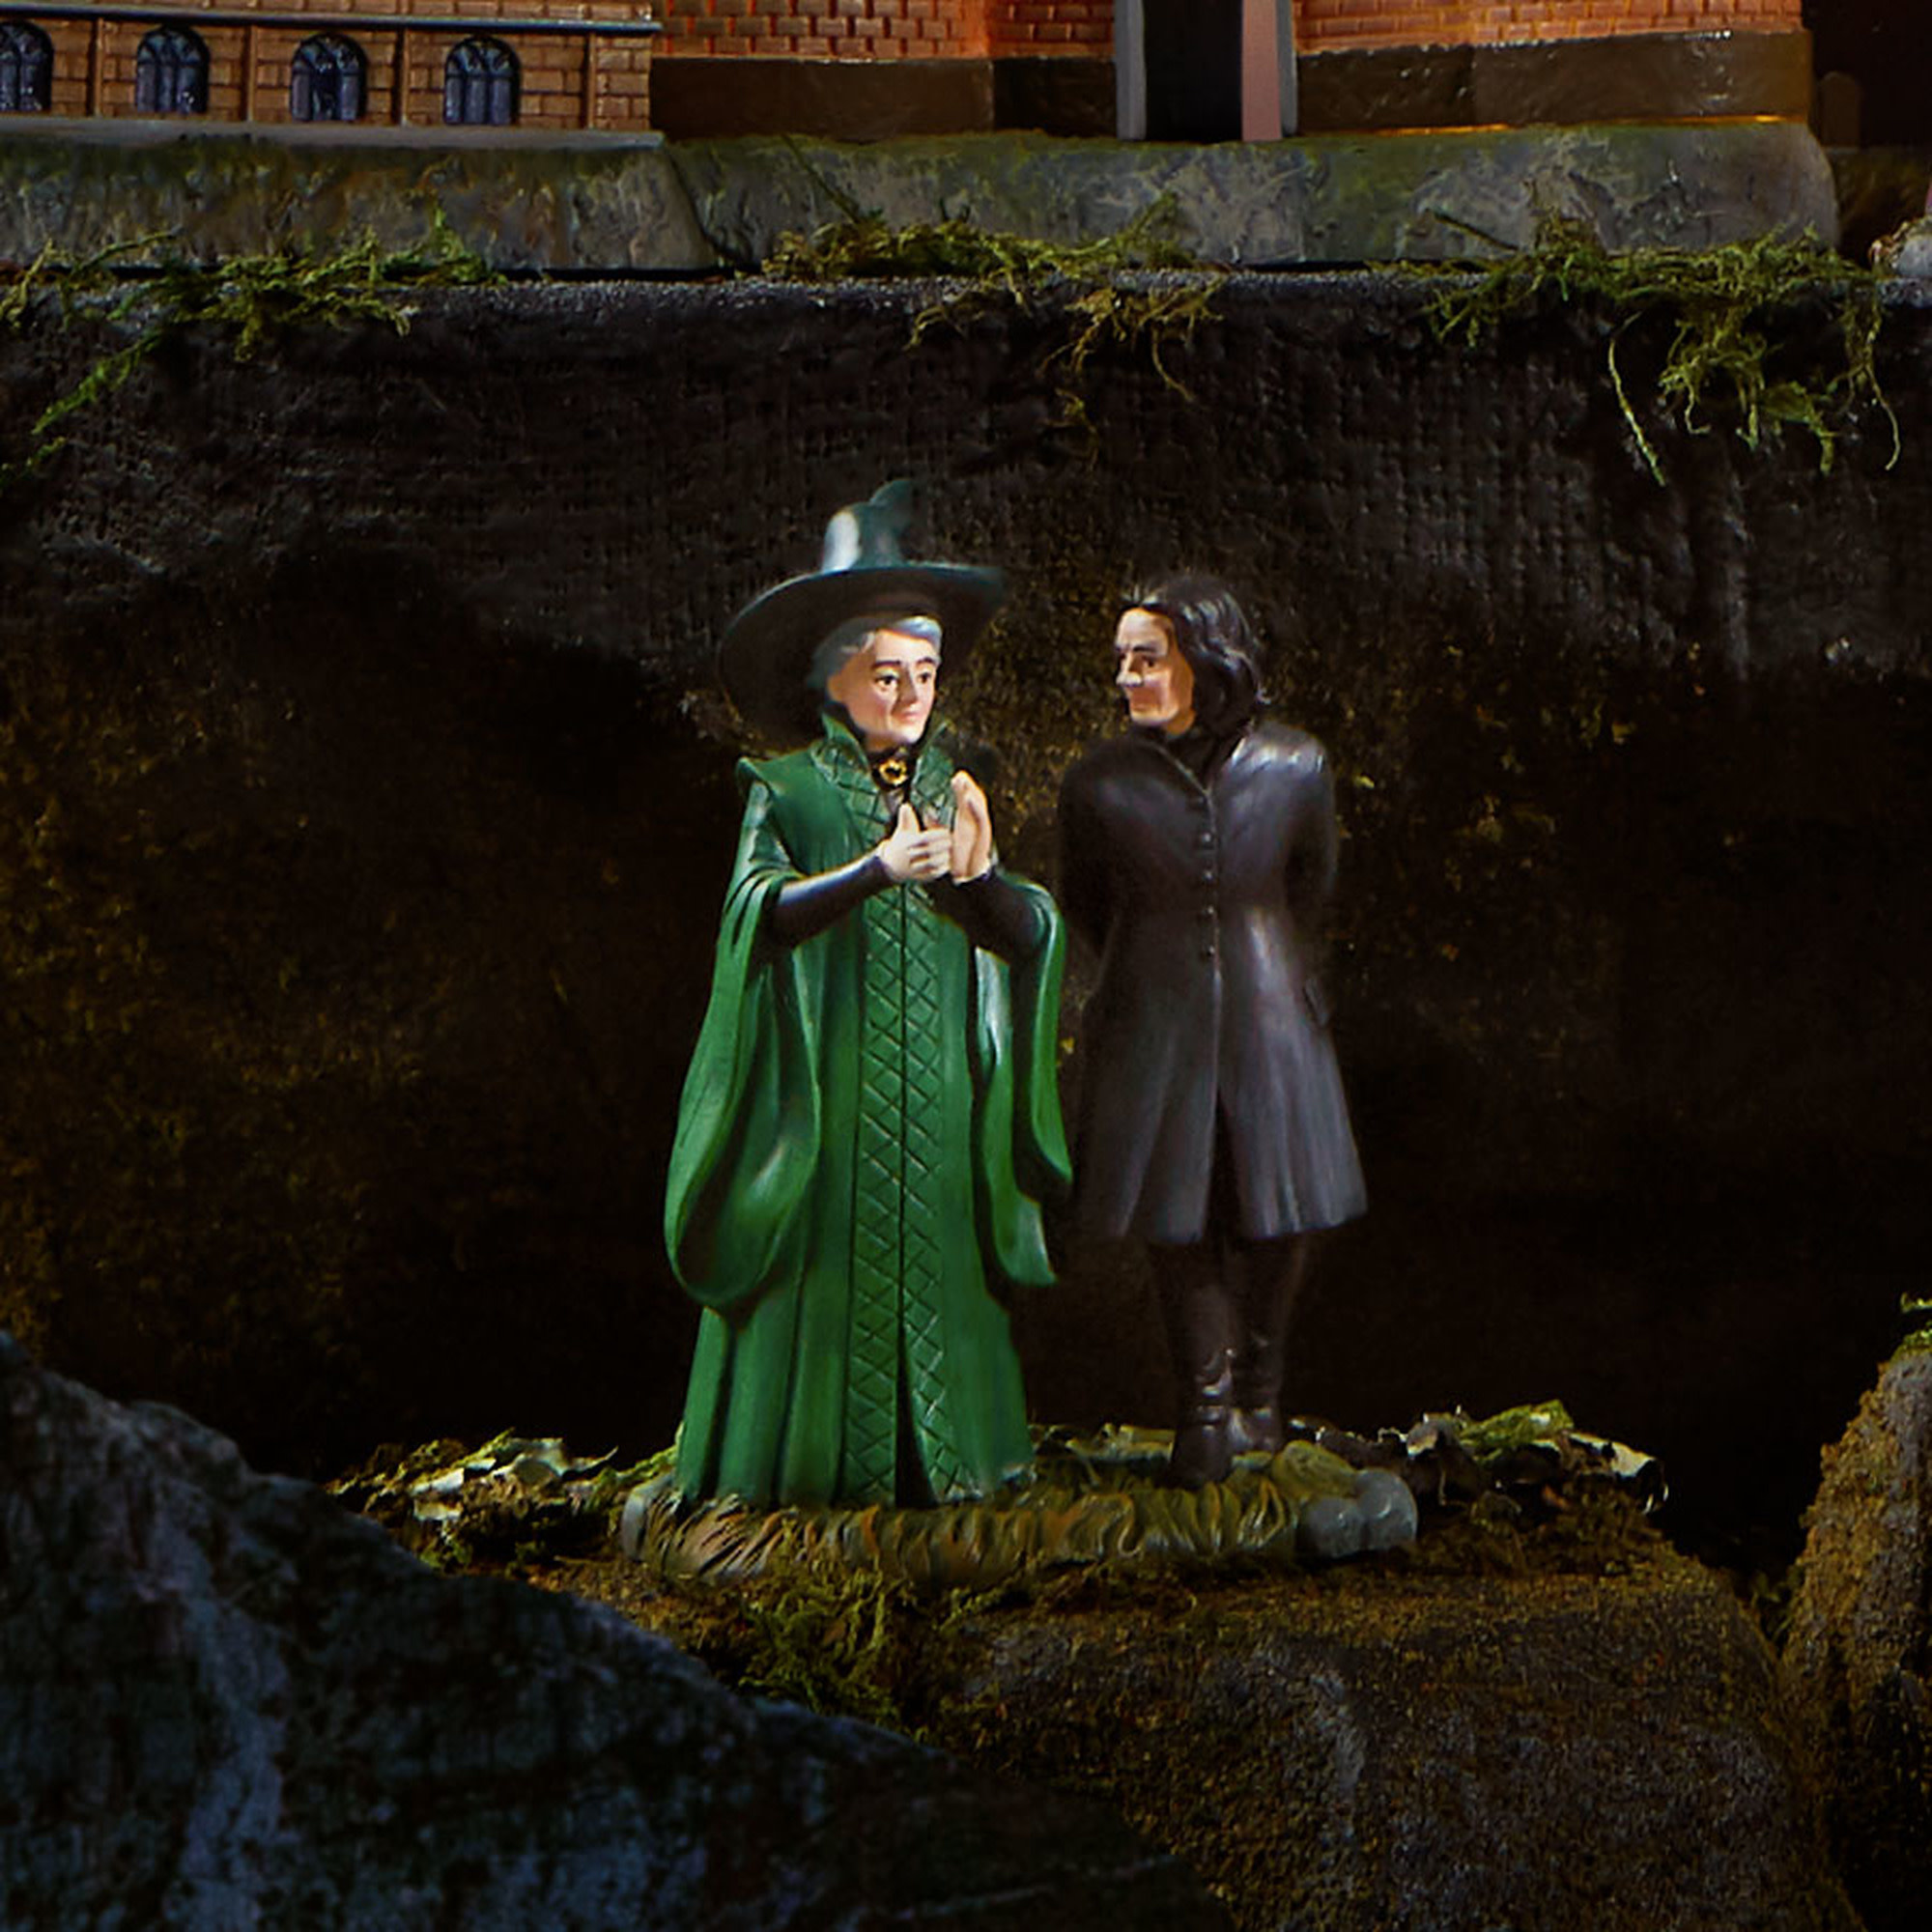 Department 56 Harry Potter Village Snape and McGonagall